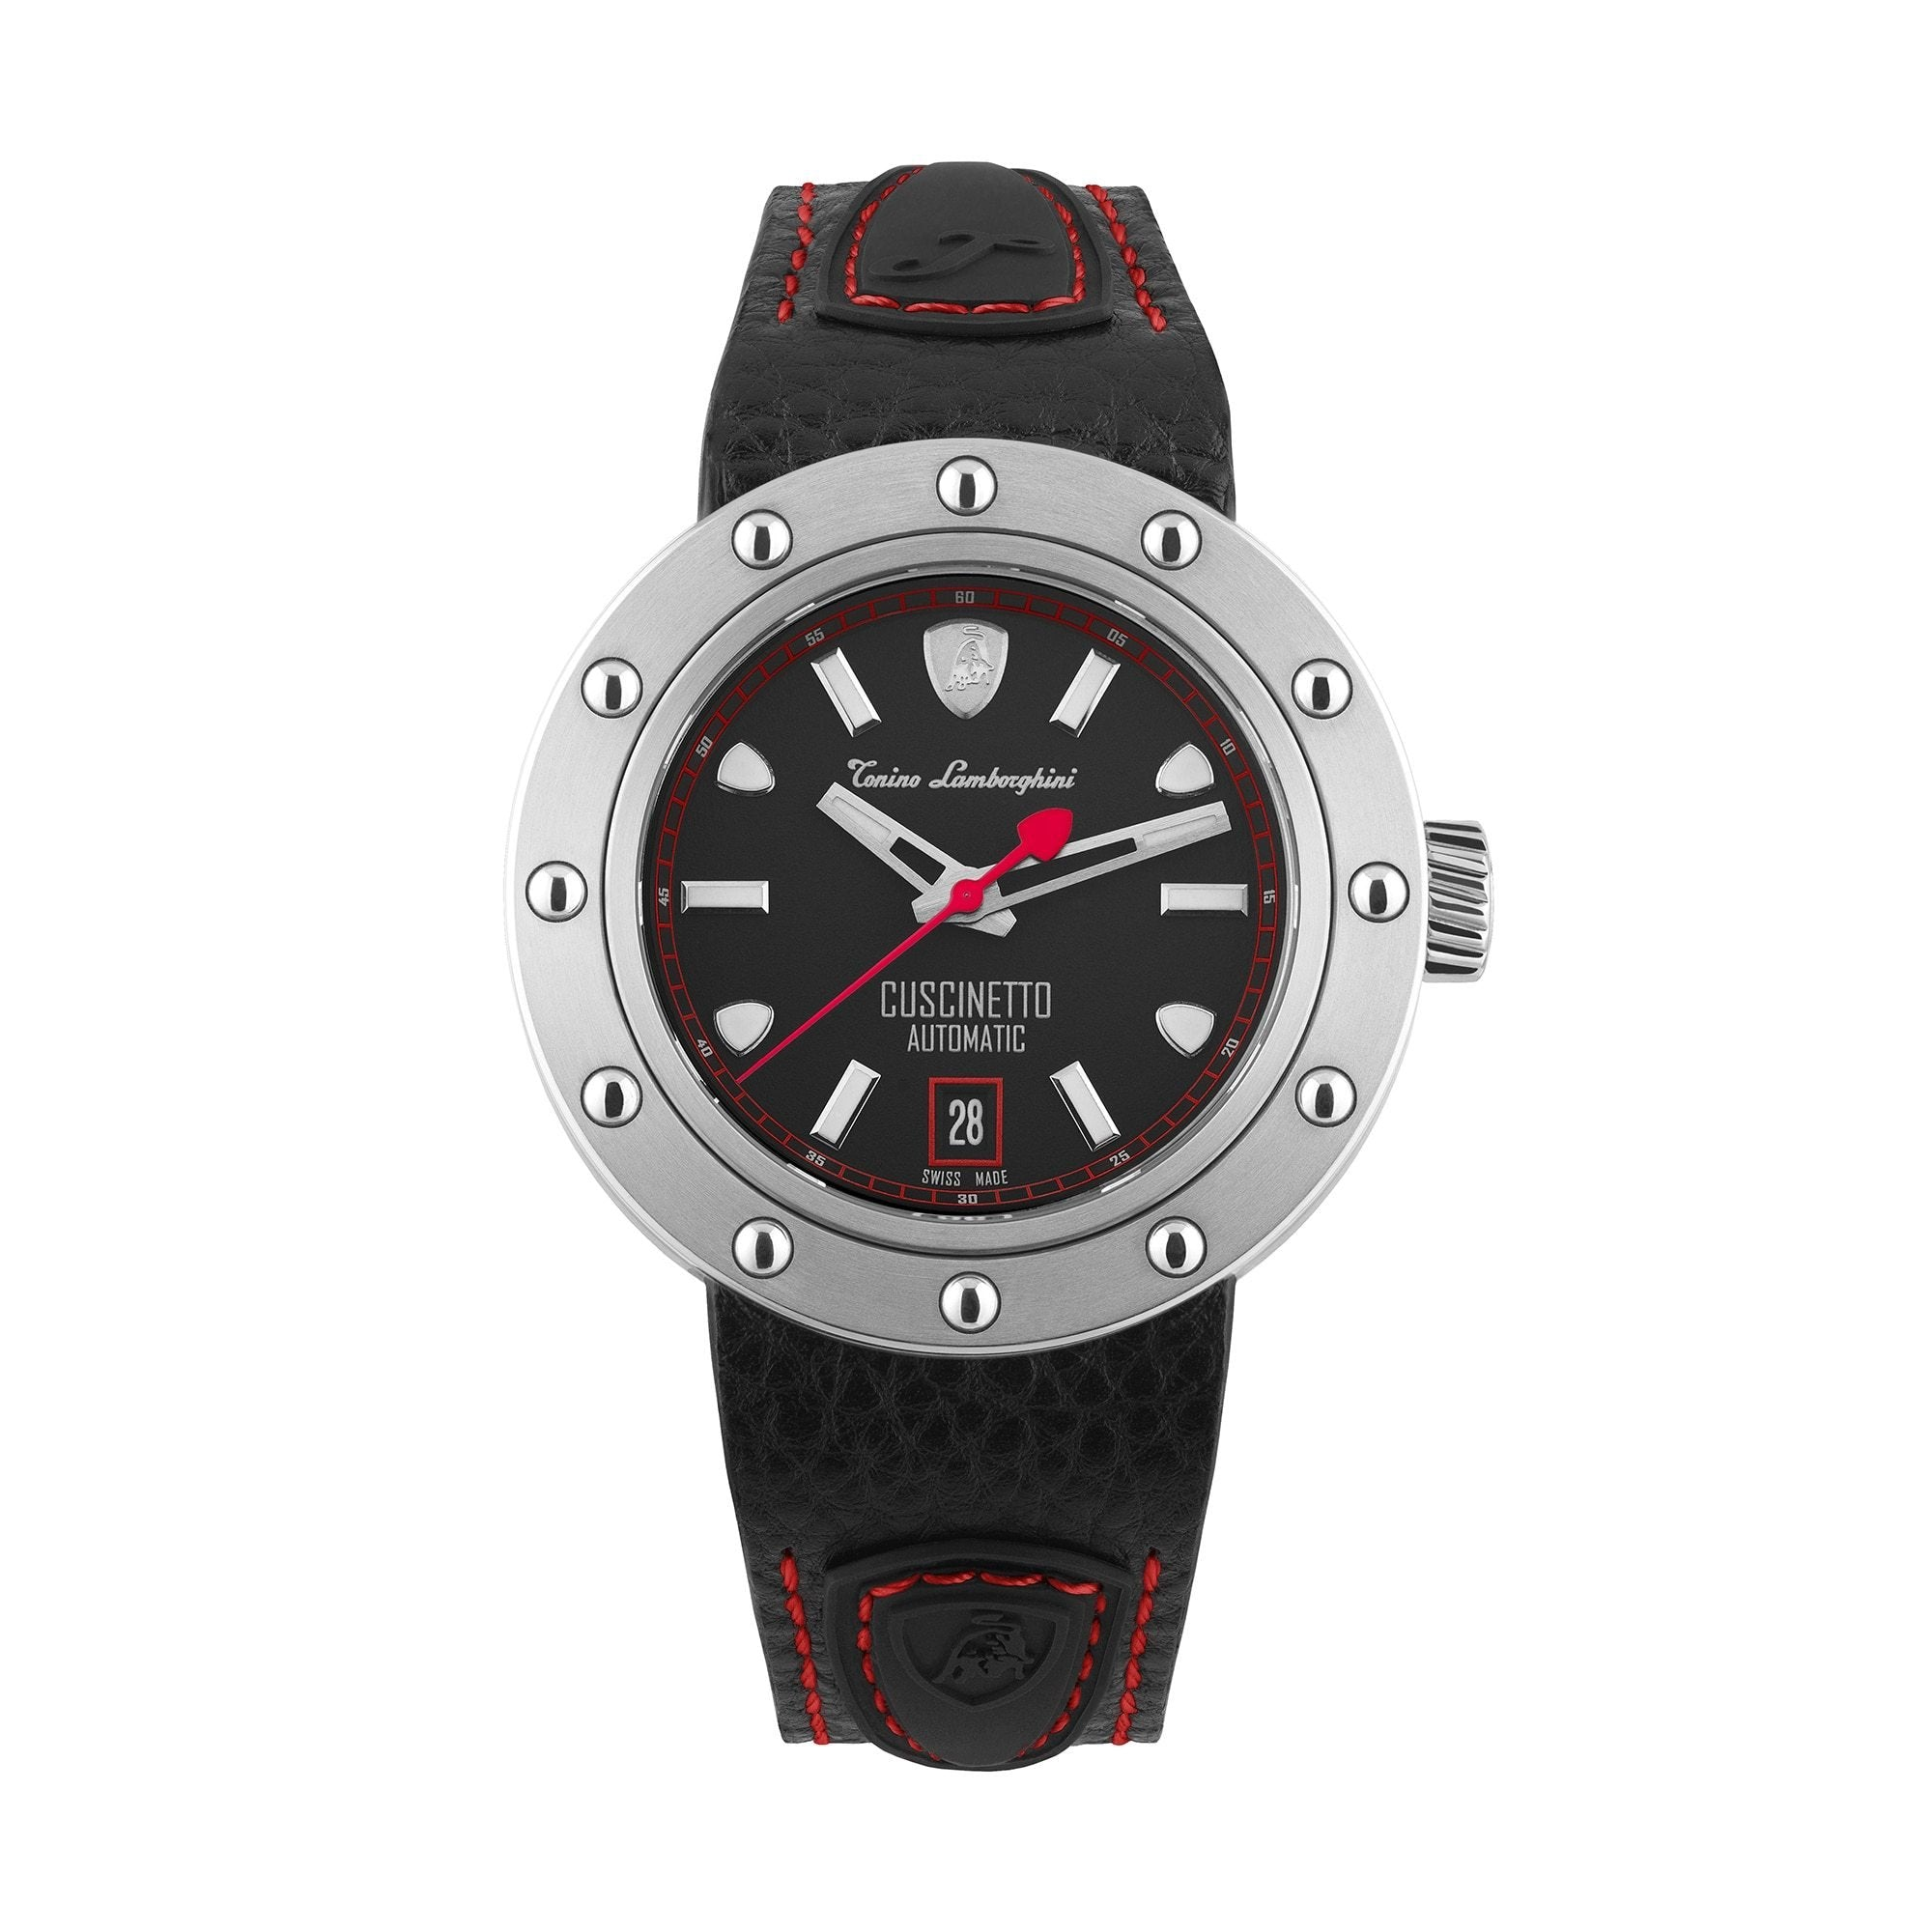 Tonino Lamborghini Cuscinetto Date Red - Watches & Crystals